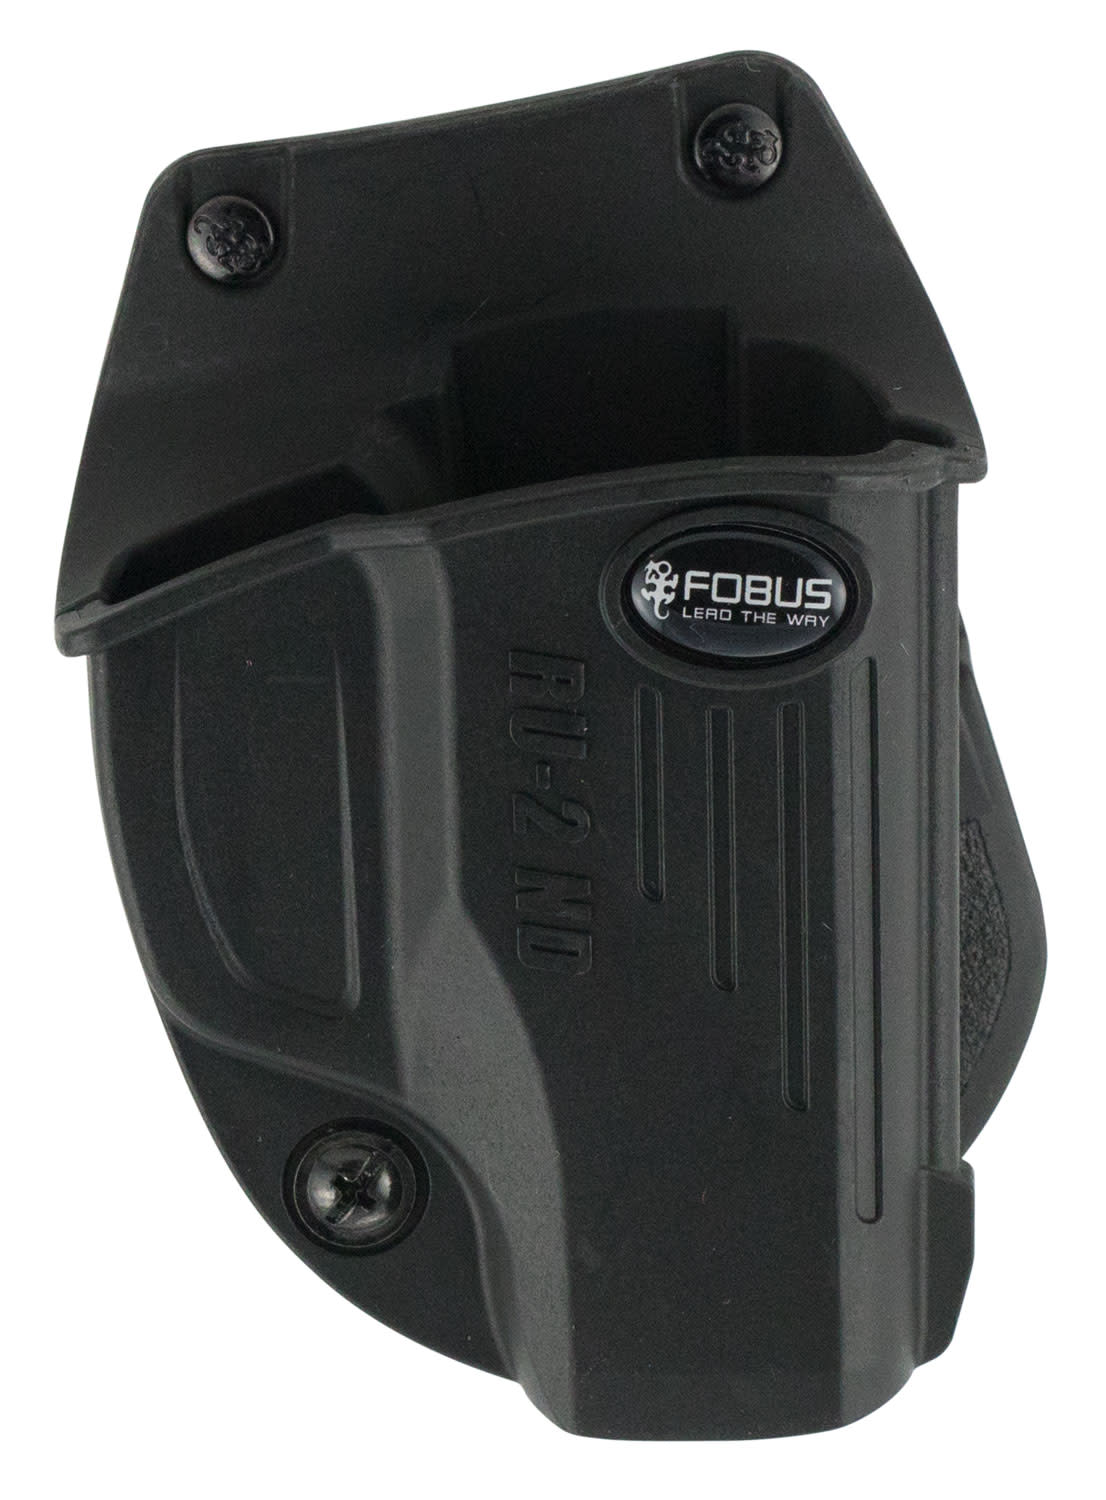 Fobus Evolution Paddle Holster - 1911